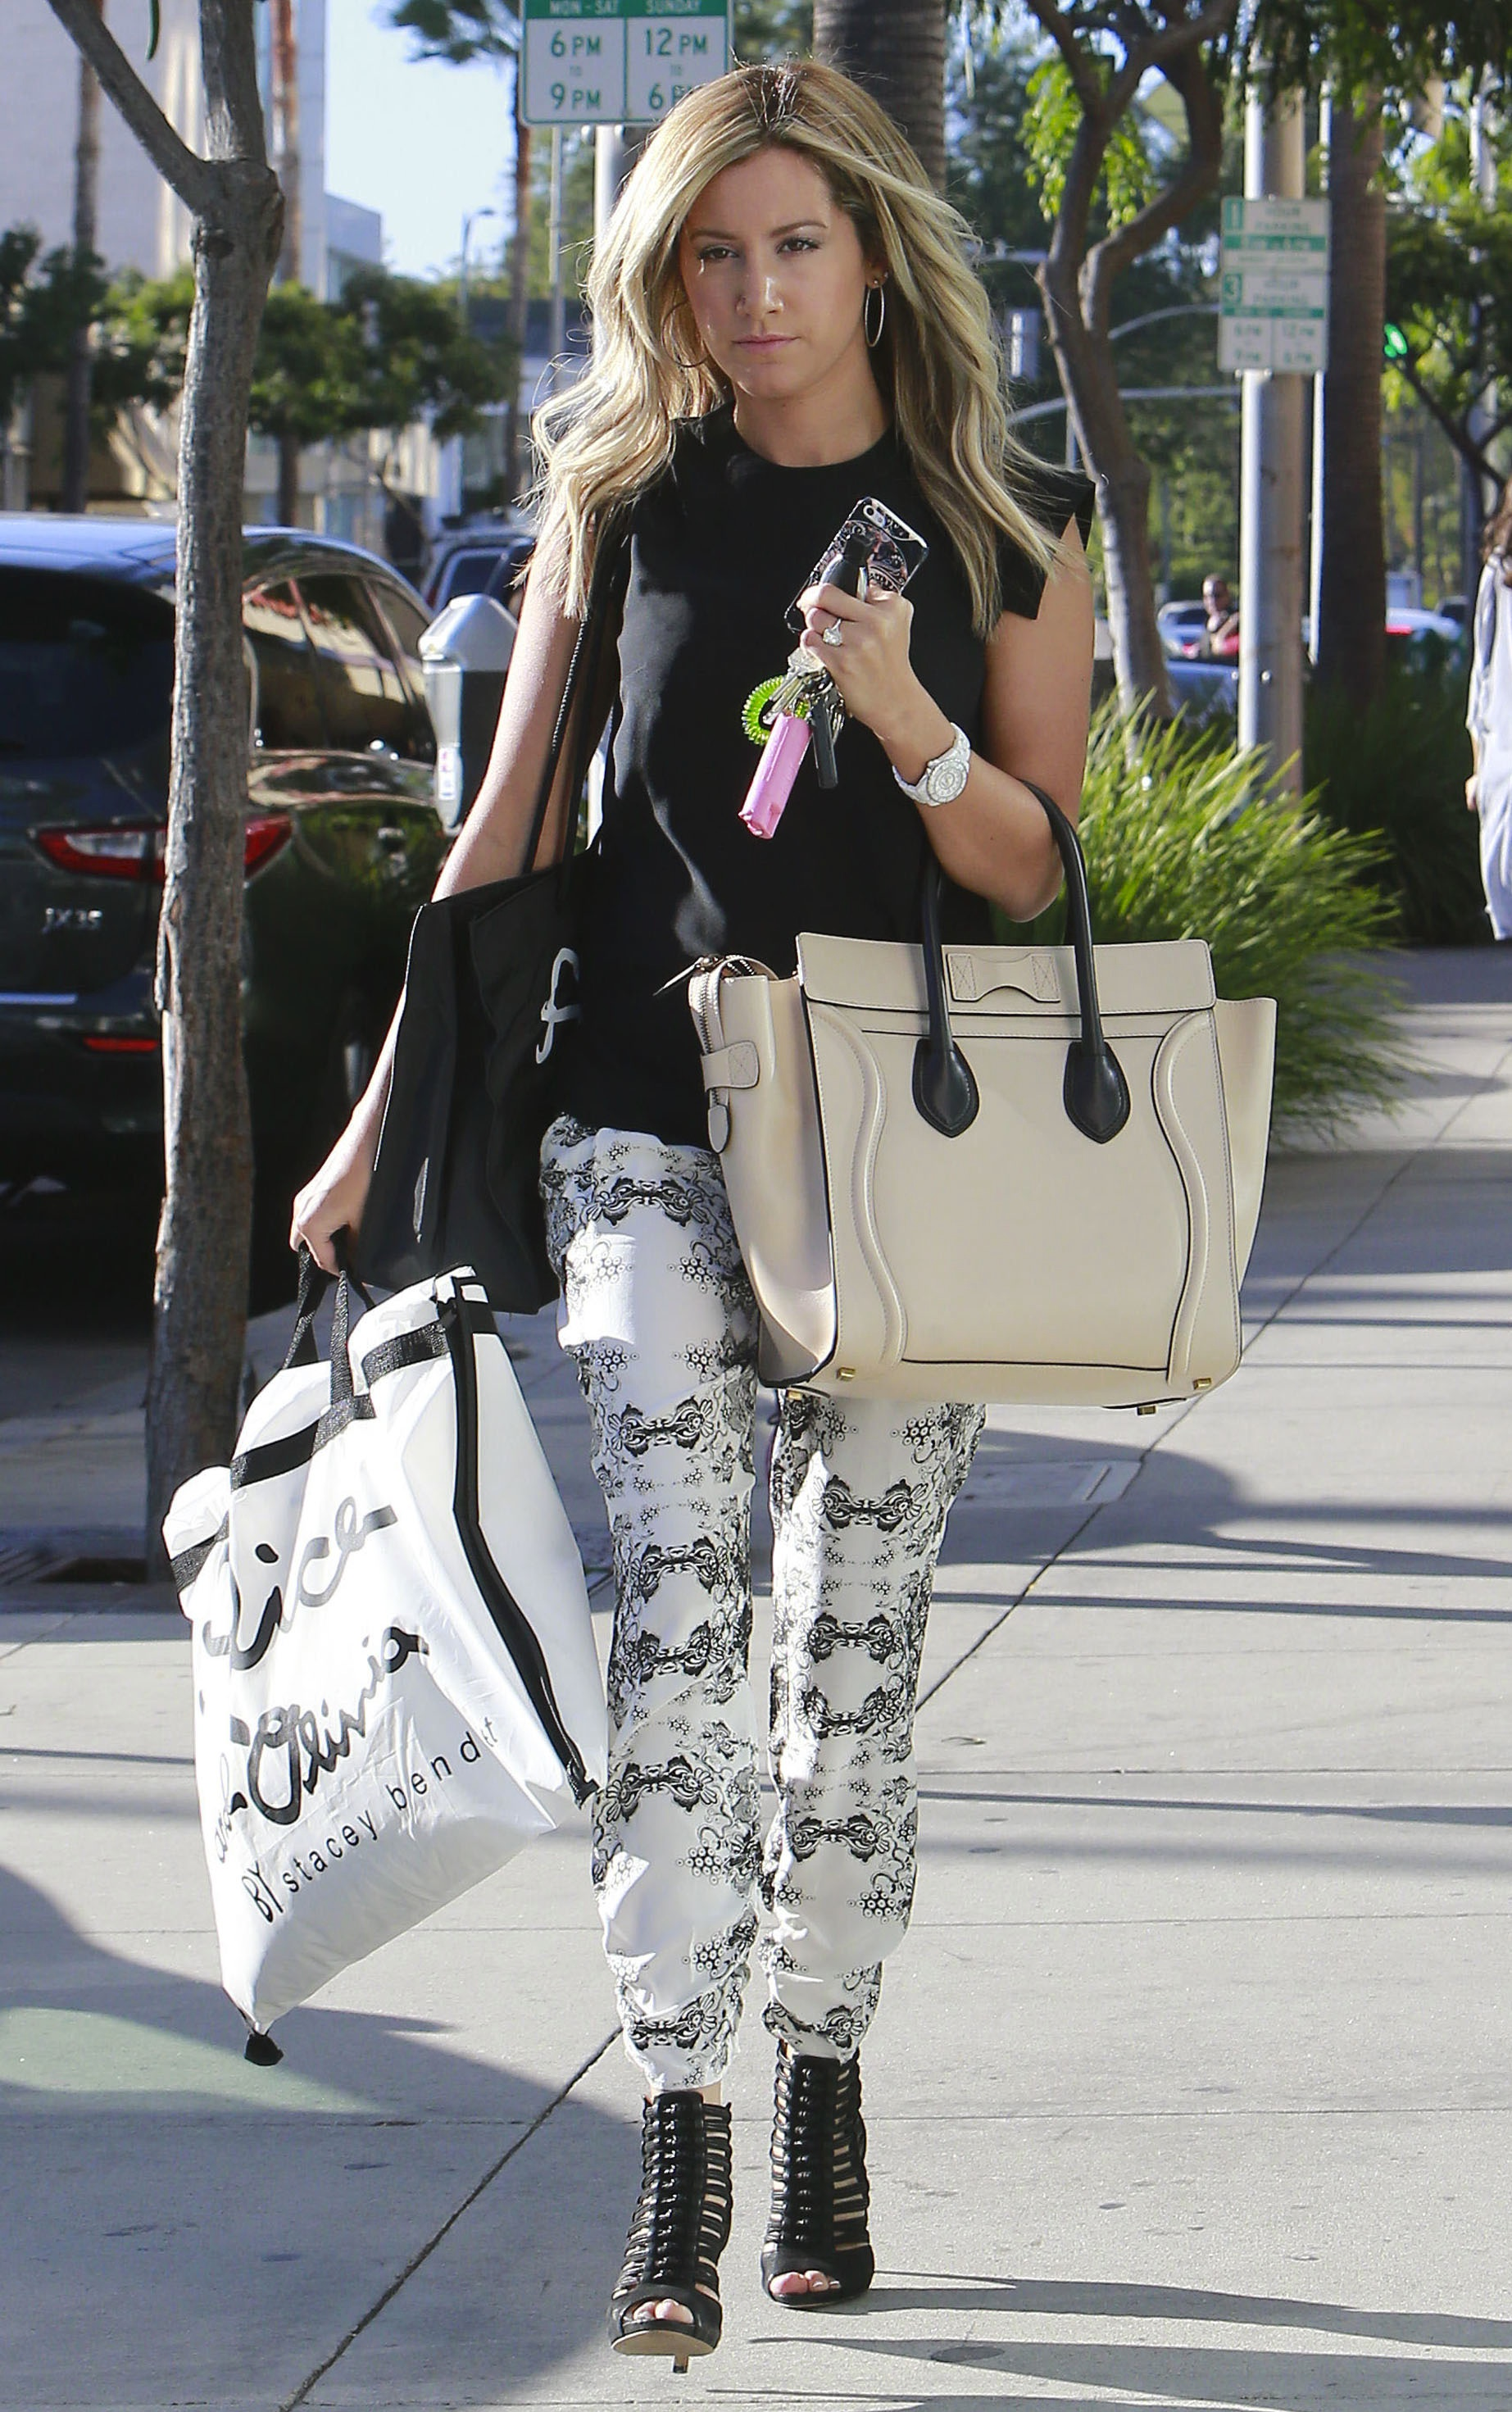 Get the Look: Ashley Tisdale's Black & White Style